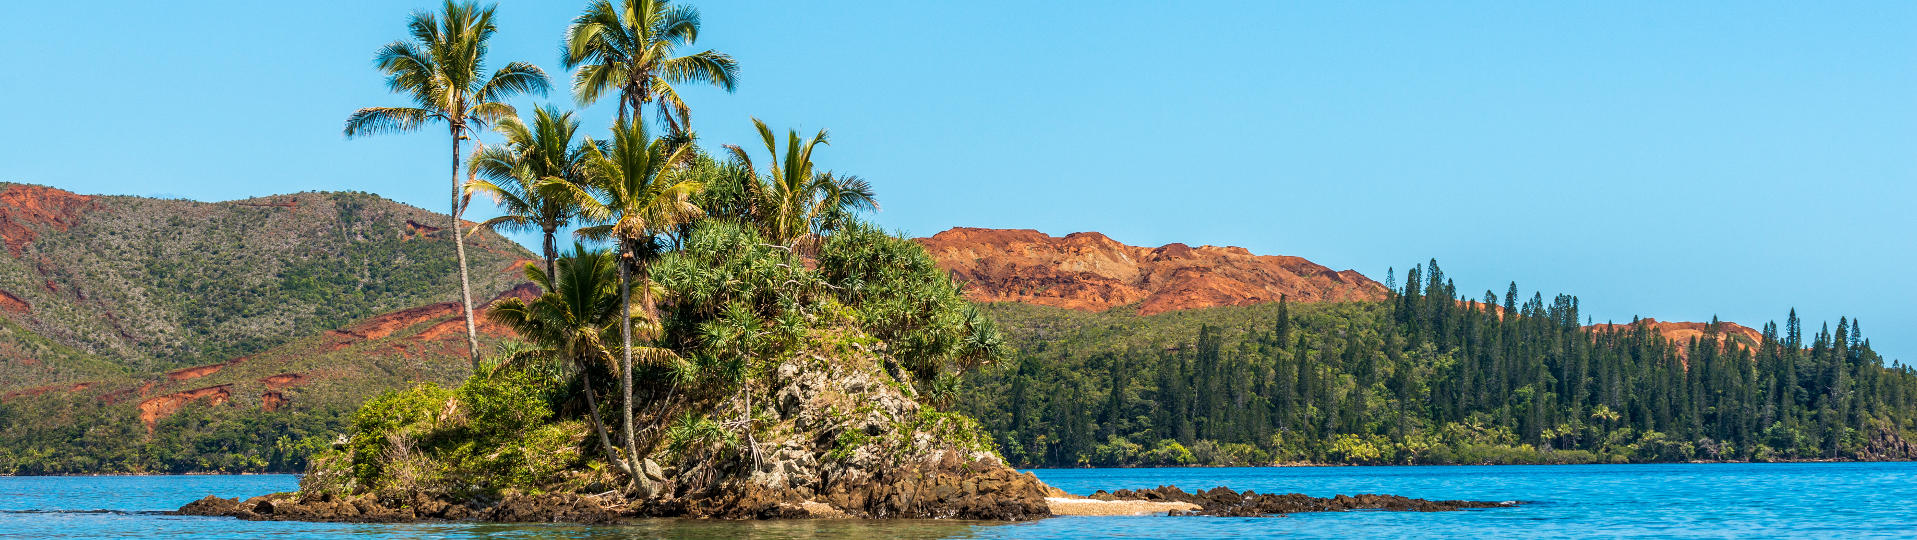 Islet and lagoon in Thio in New Caledonia